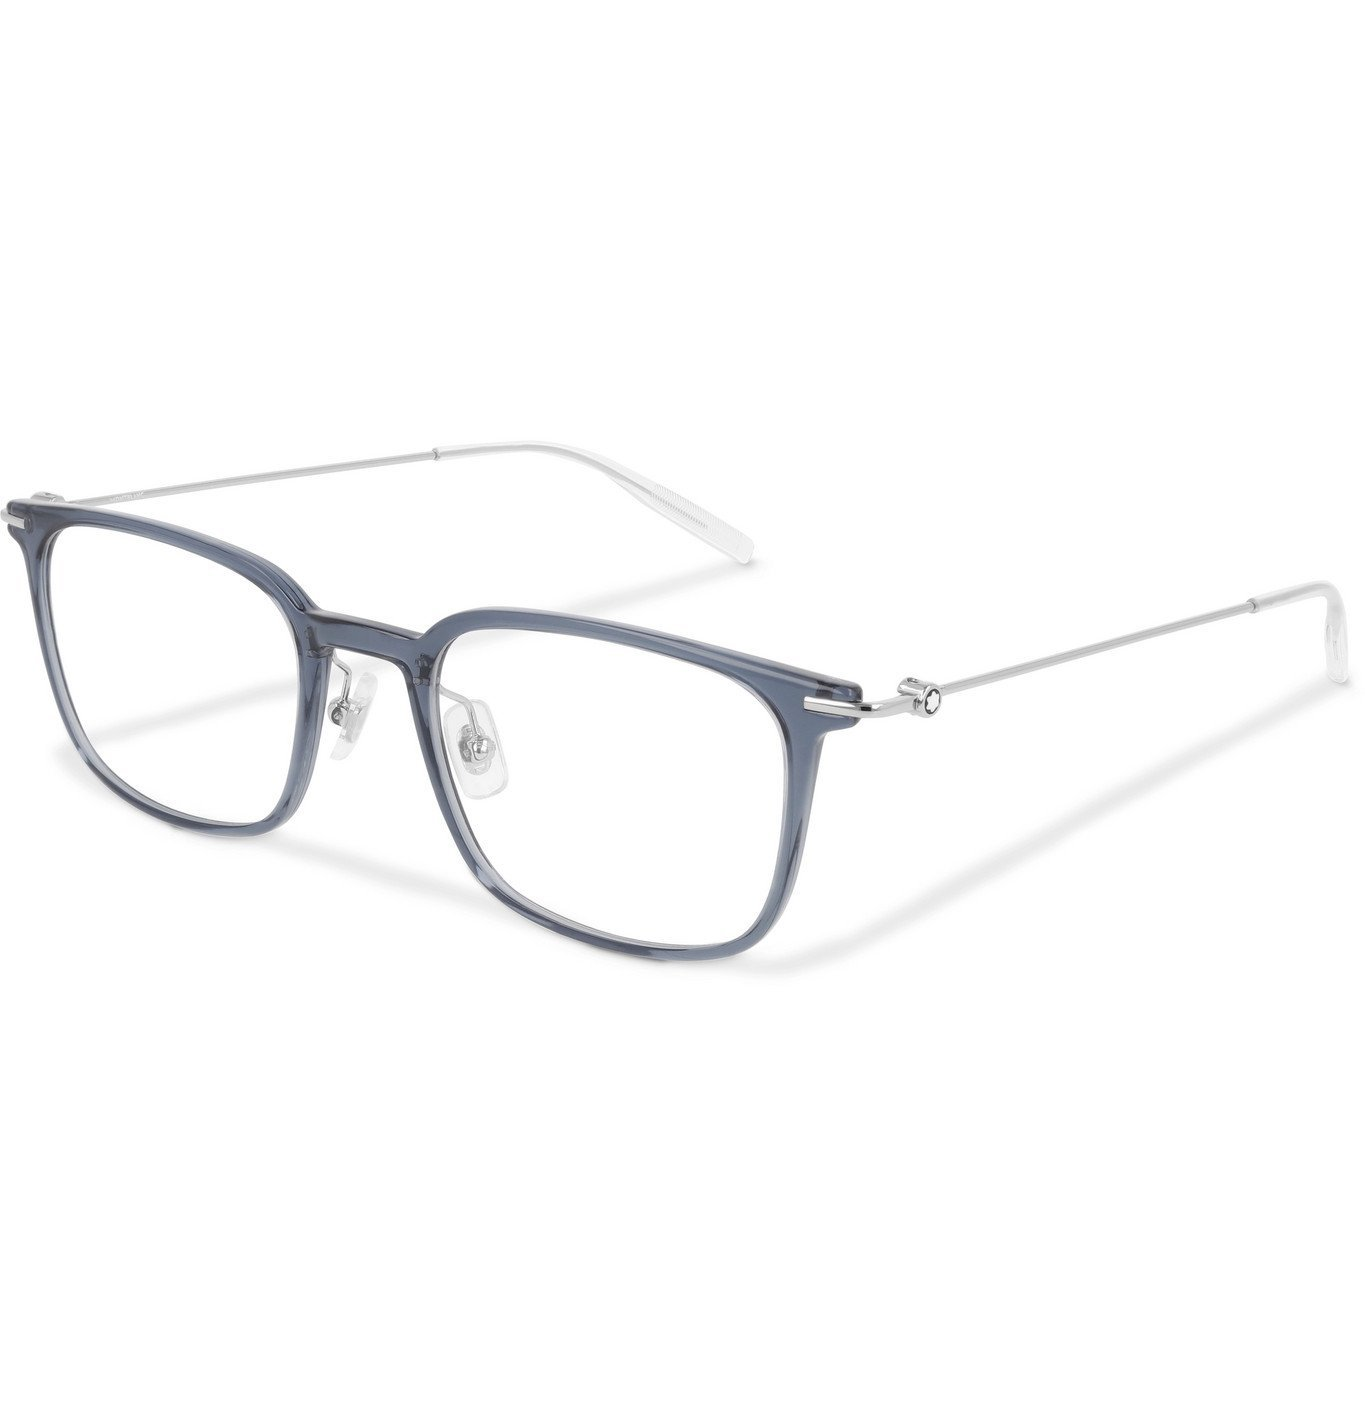 Photo: Montblanc - D-Frame Acetate Optical Glasses - Unknown